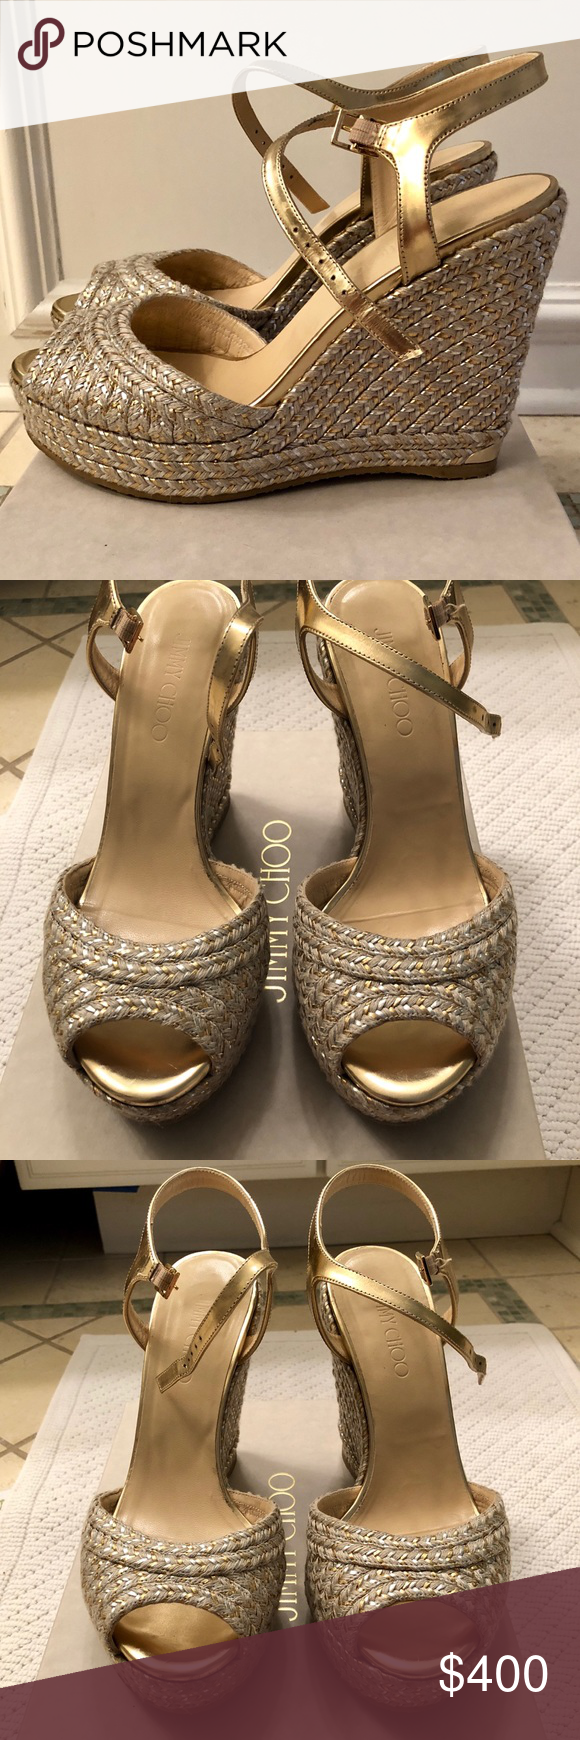 74f858f2d98 Jimmy Choo Silver  amp  Gold Perla Dore Wedge Jimmy Choo Dore Wedge Sandals.  Gold